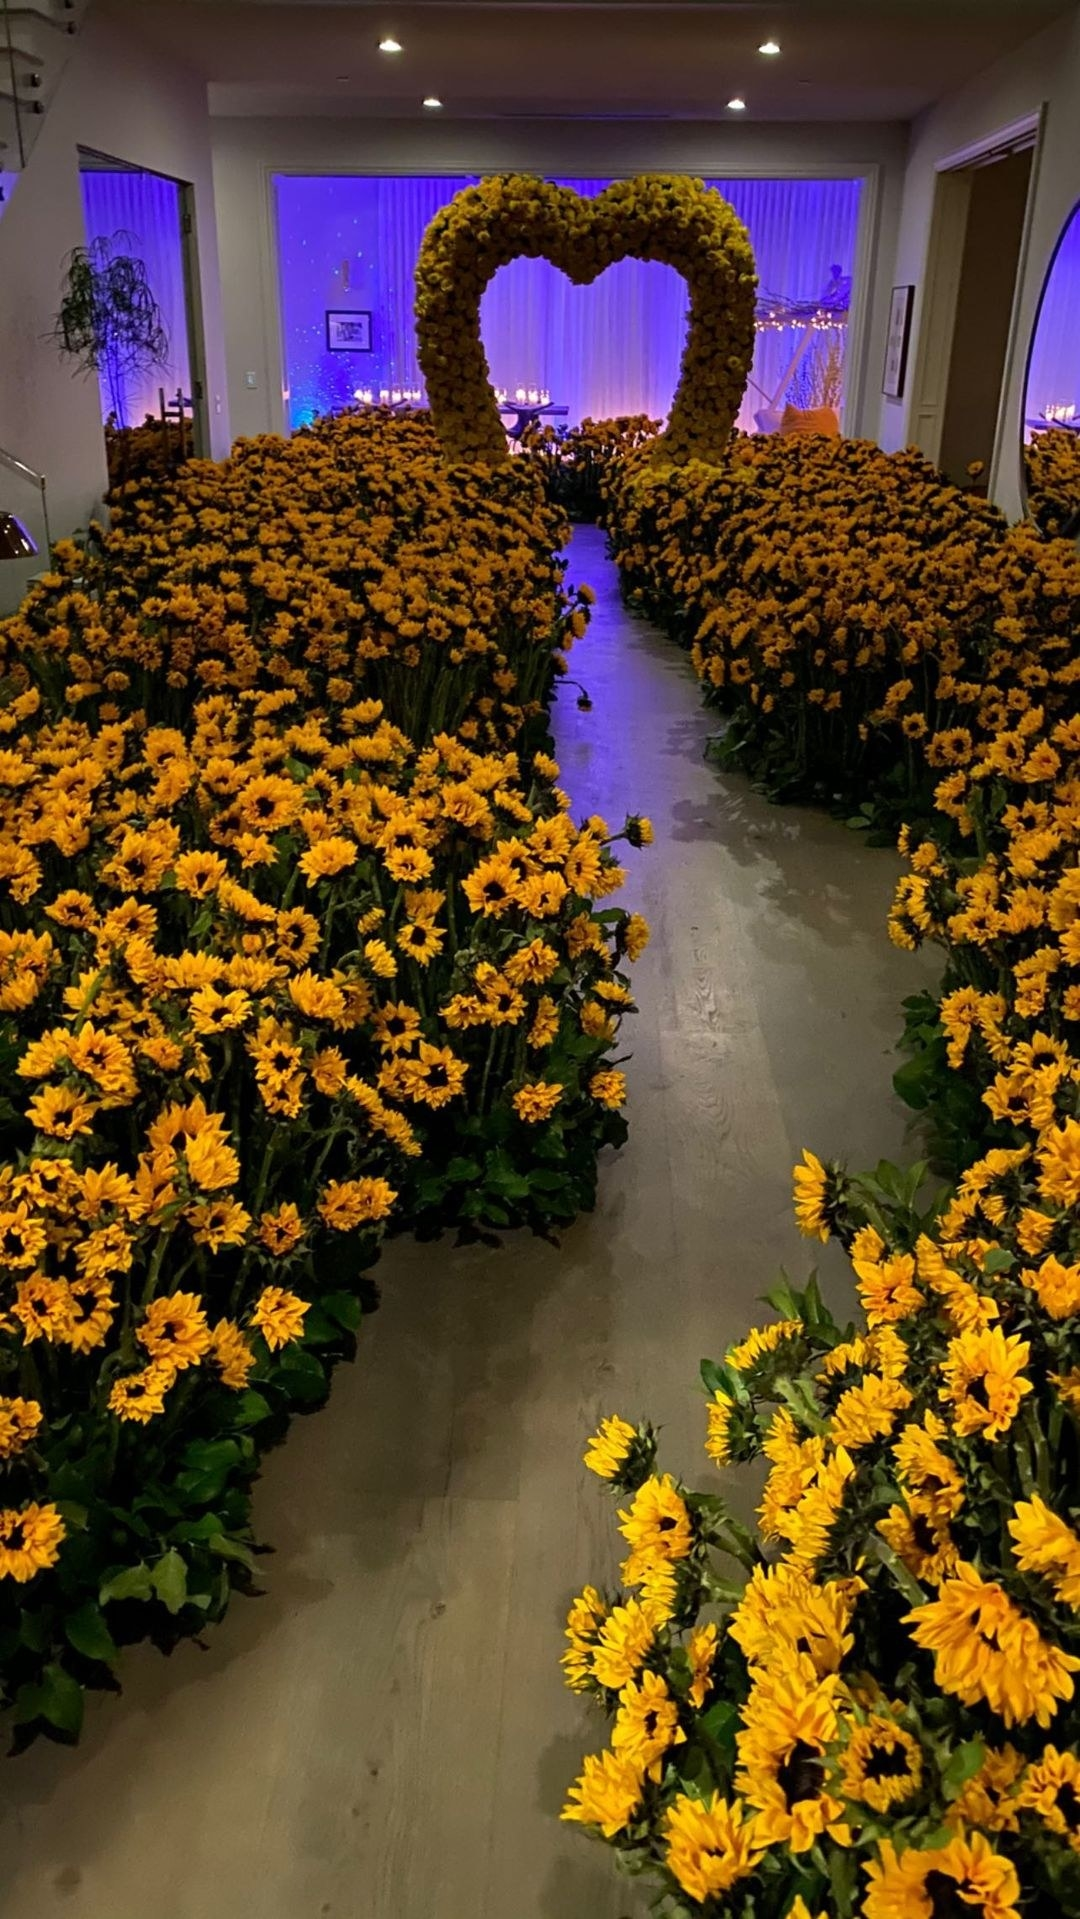 An elaborate sunflower path that leads to a large heart-shaped alter made out of flowers